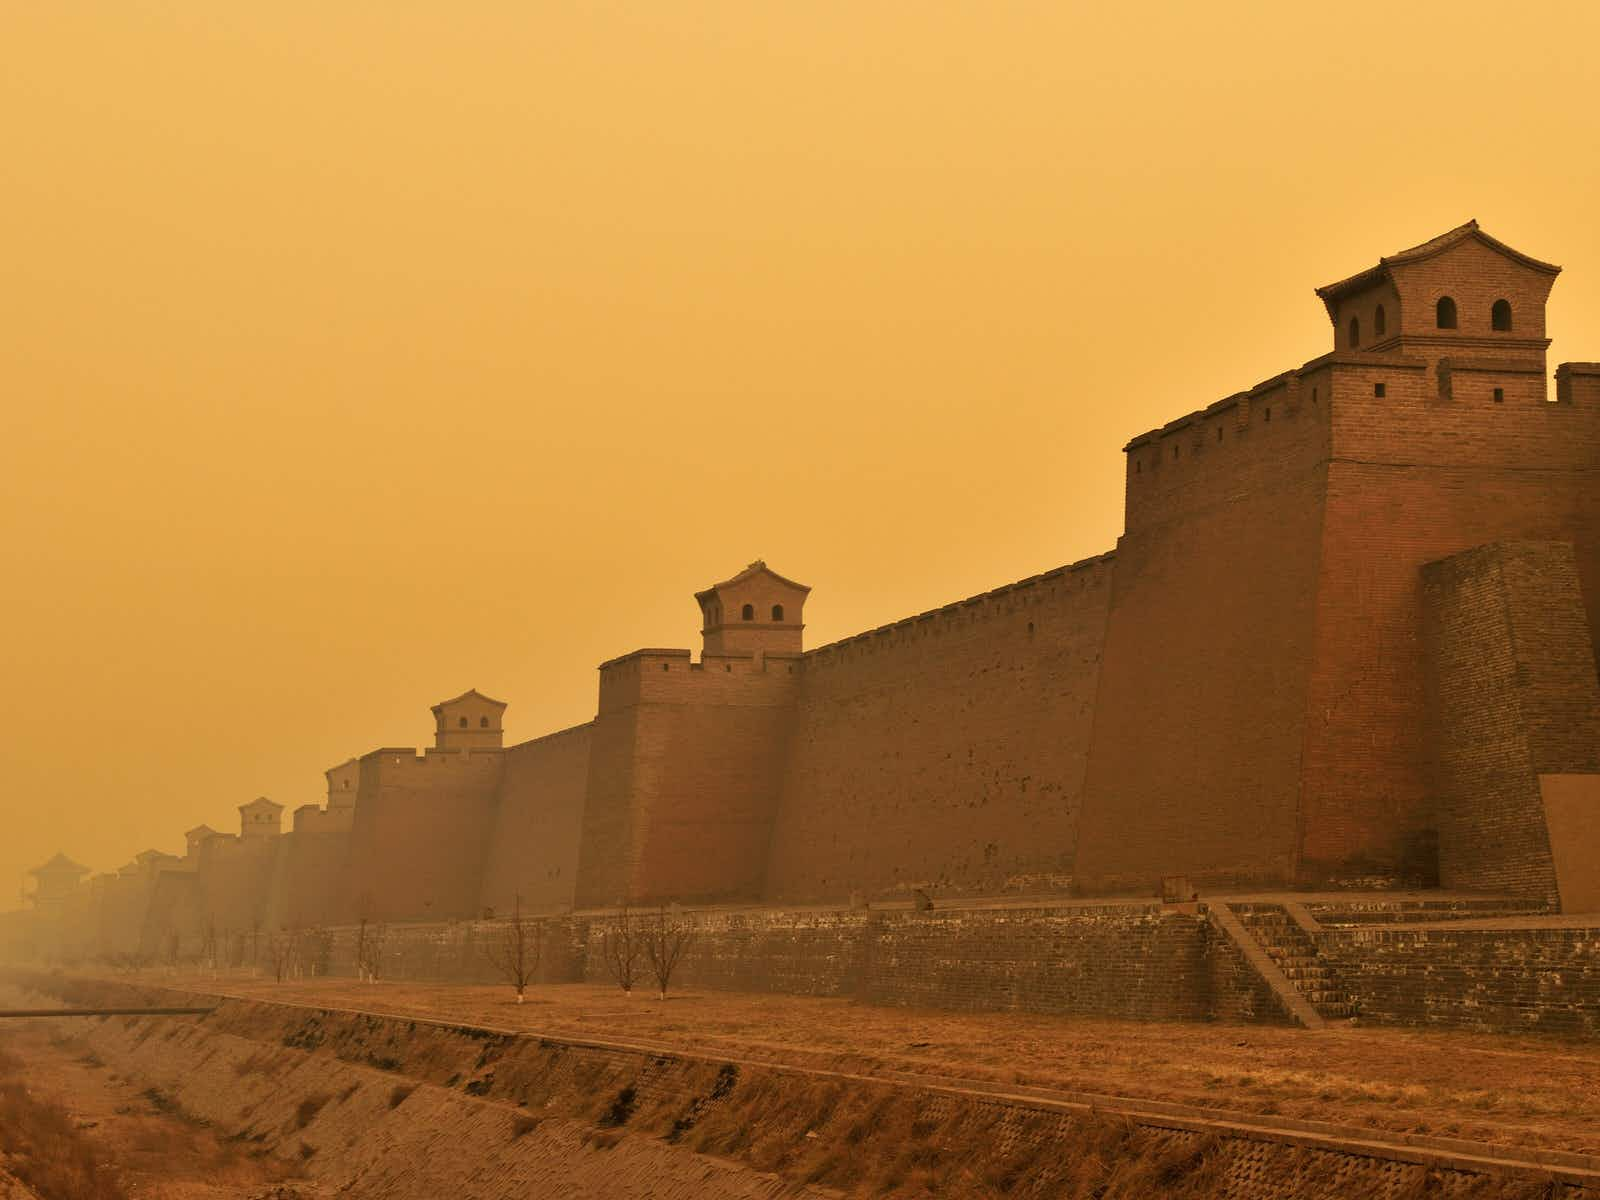 Great walls of China: the Middle Kingdom's enduring city